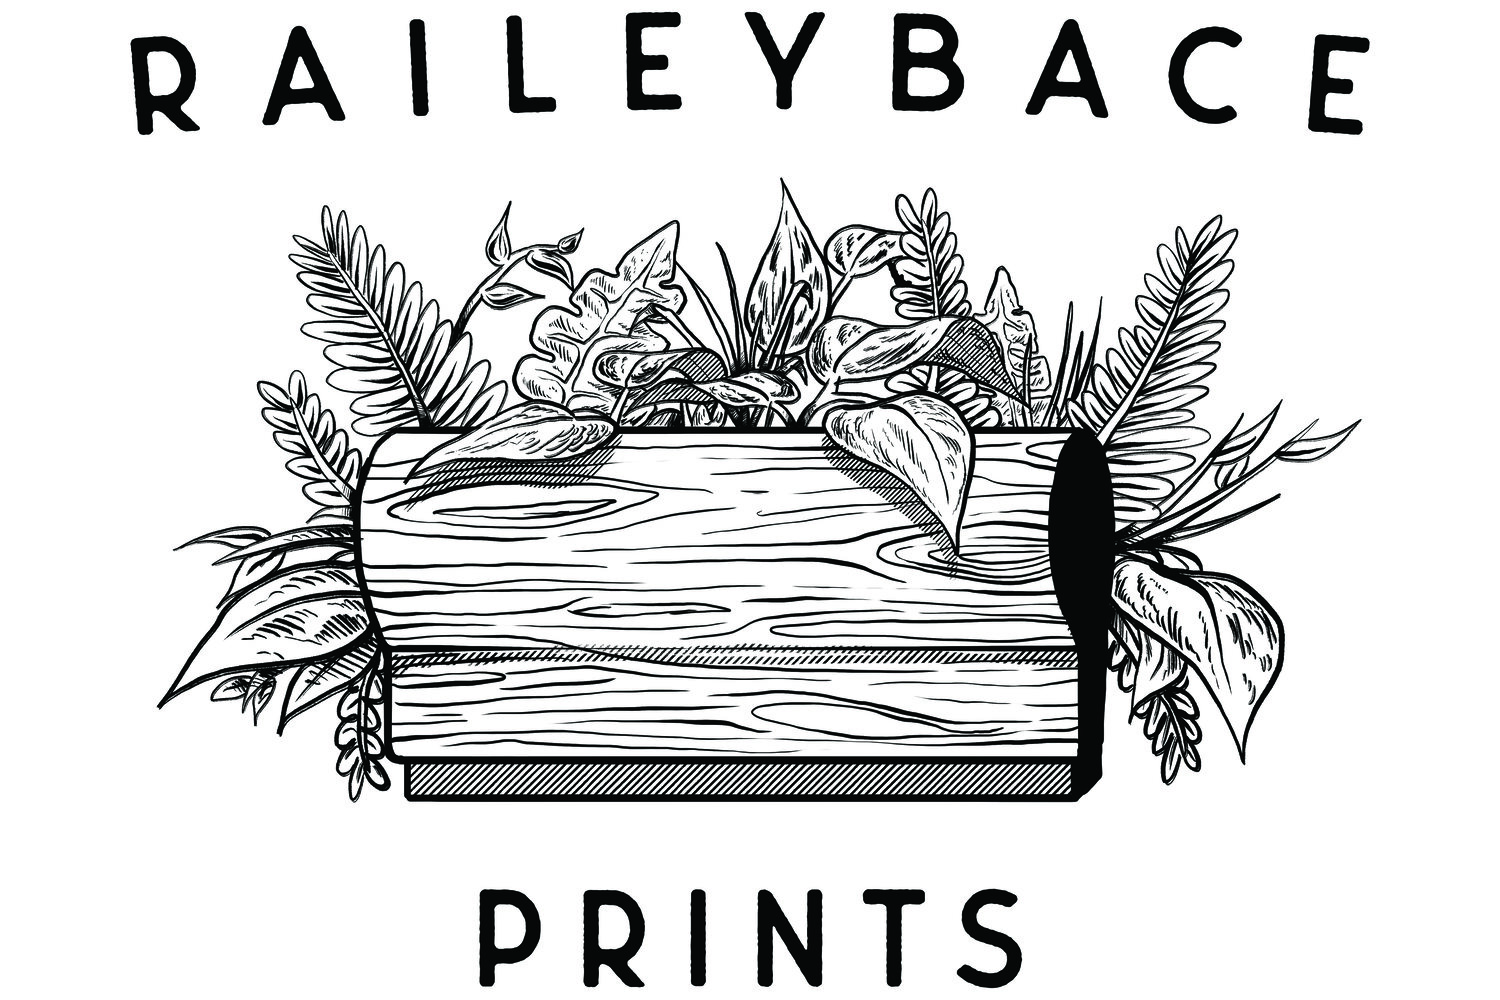 RaileyBacePrints